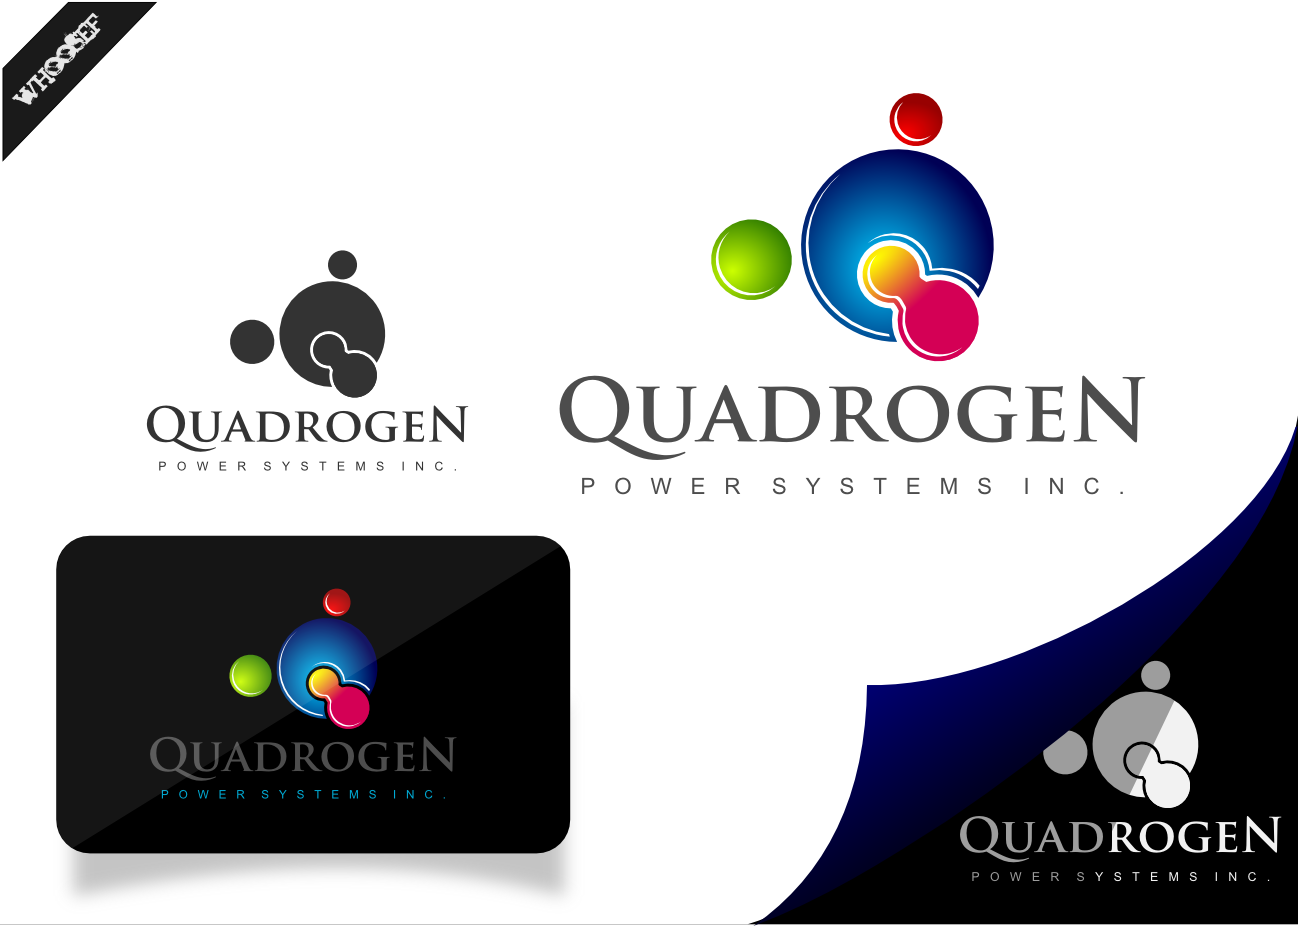 Logo Design by whoosef - Entry No. 111 in the Logo Design Contest New Logo Design for Quadrogen Power Systems, Inc.